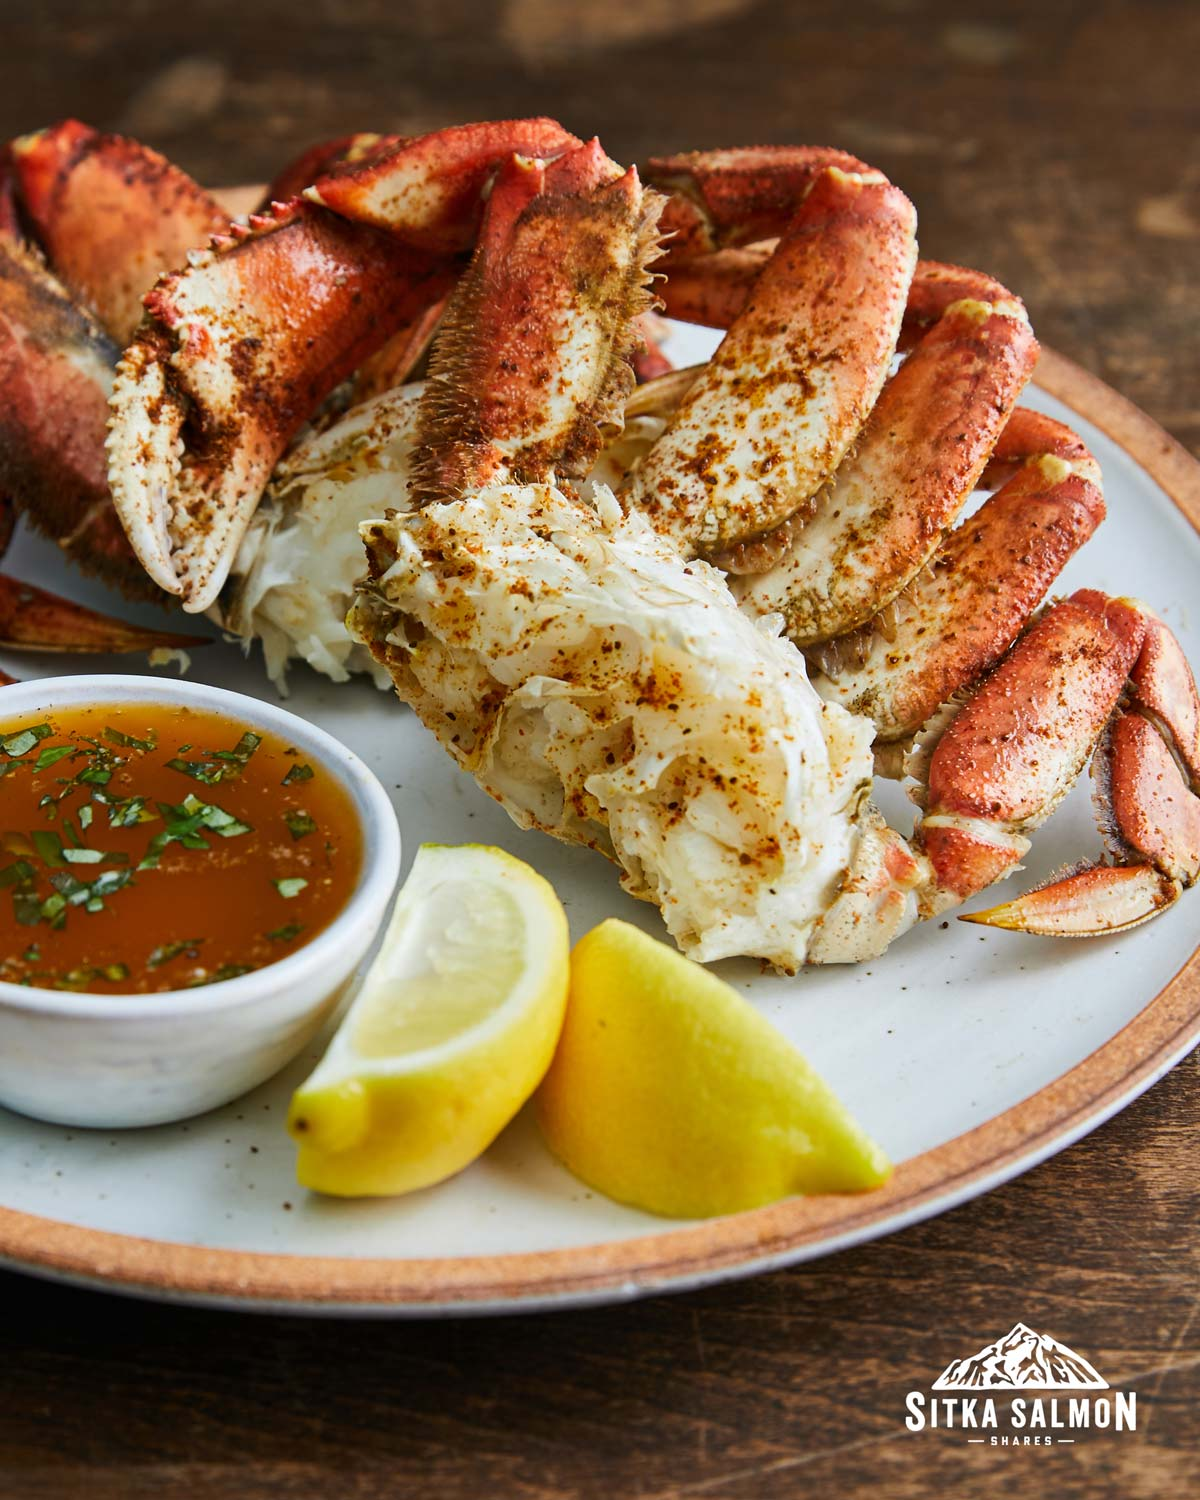 Steamed Dungeness Crab with Herbed Butter Recipe | Sitka Salmon Shares